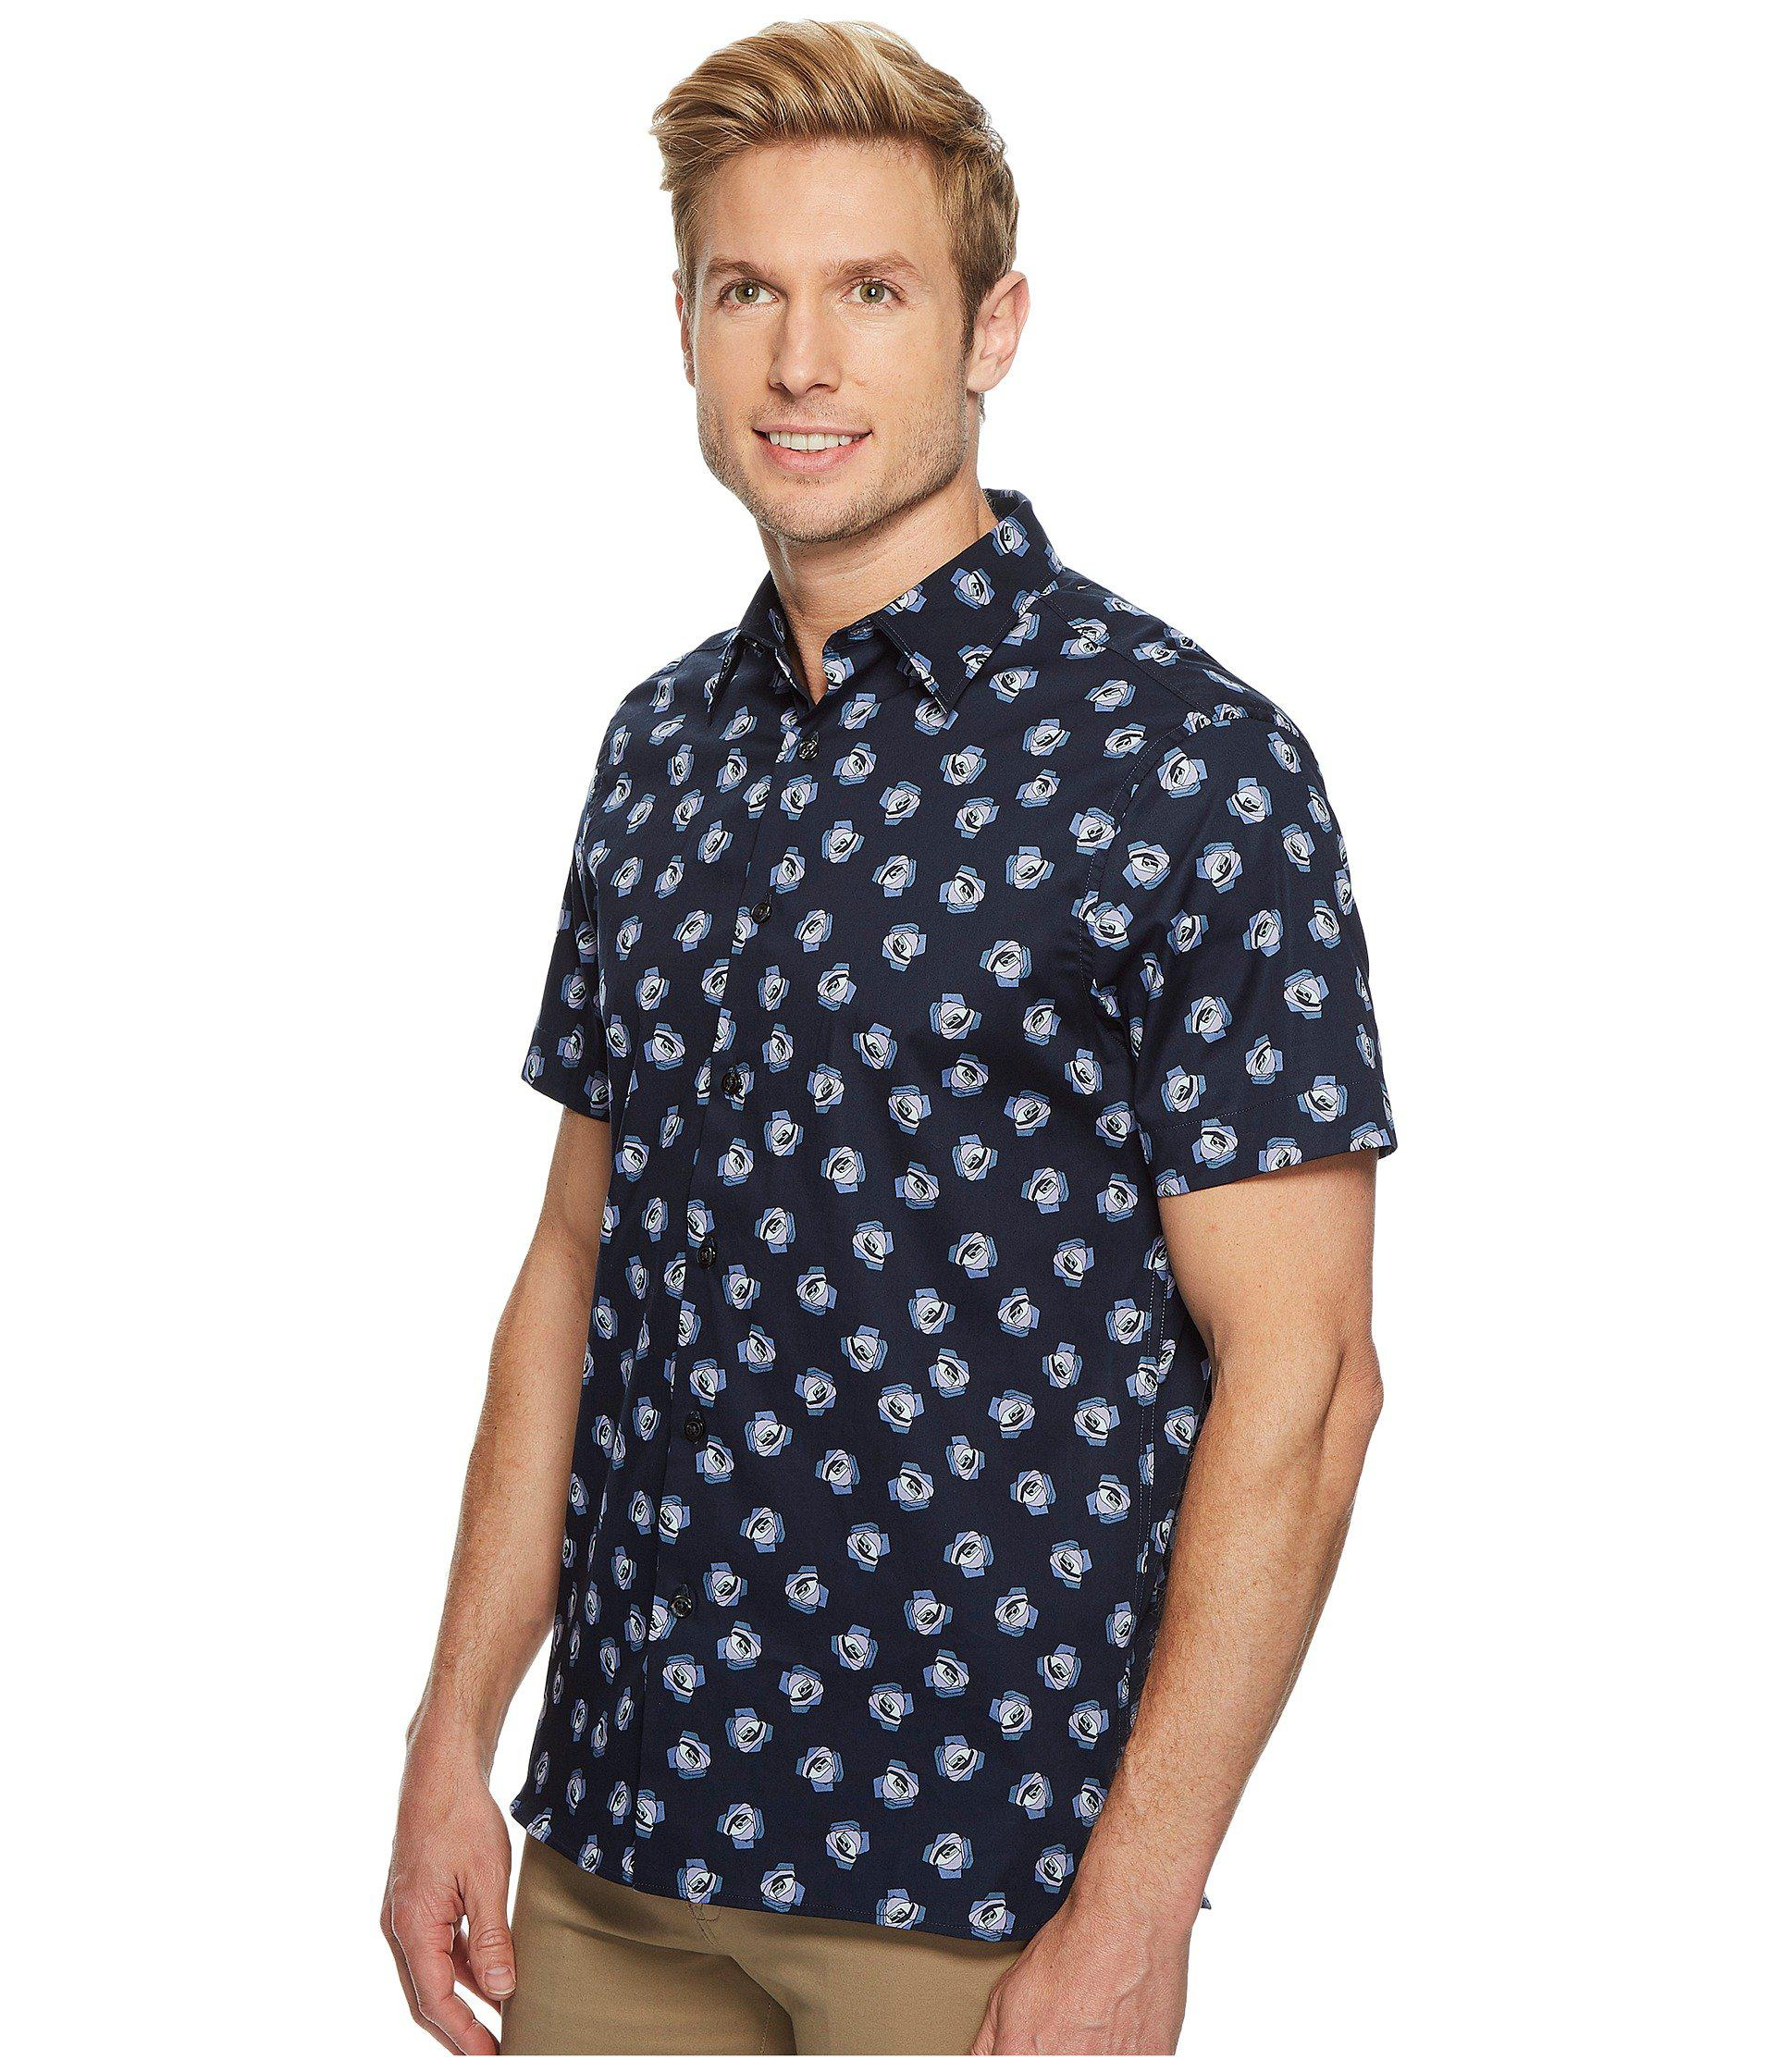 3134e9930b Lyst - Perry Ellis Short Sleeve Cluttered Rose Shirt in Blue for Men - Save  43.58974358974359%